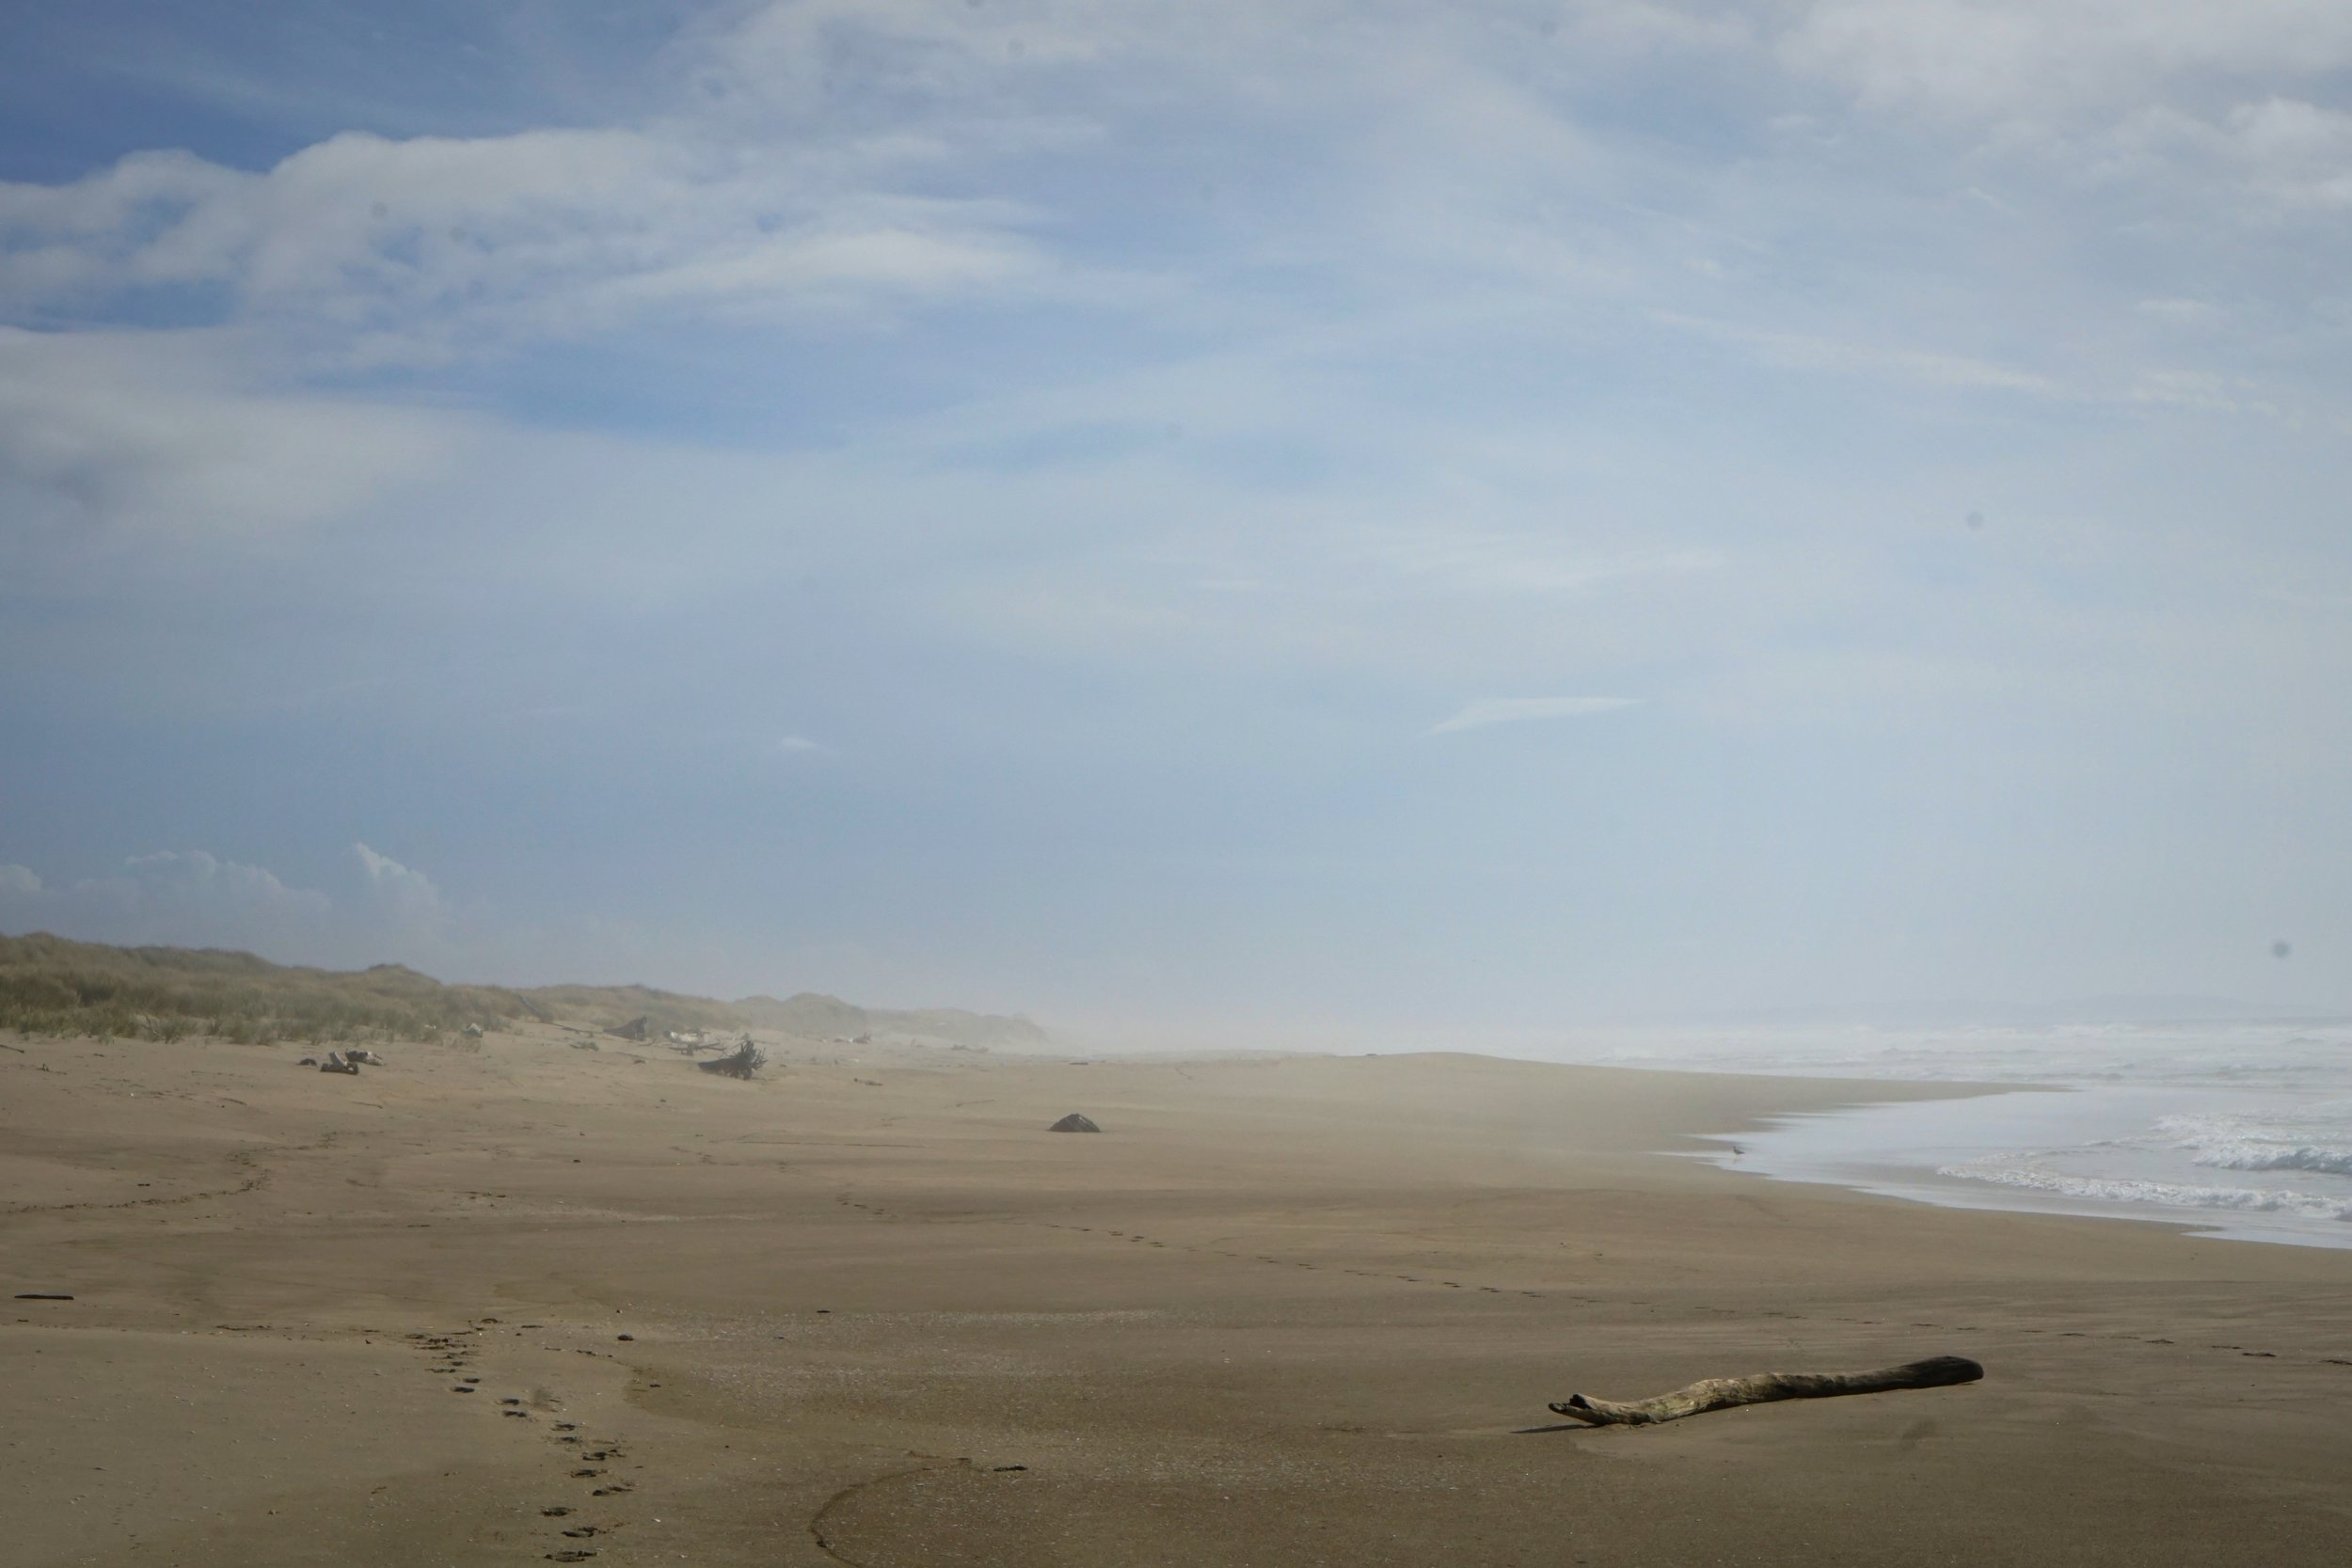 Since you have to walk 6 miles through thick sand to get to this beach, you'll likely have the beach all to yourself.